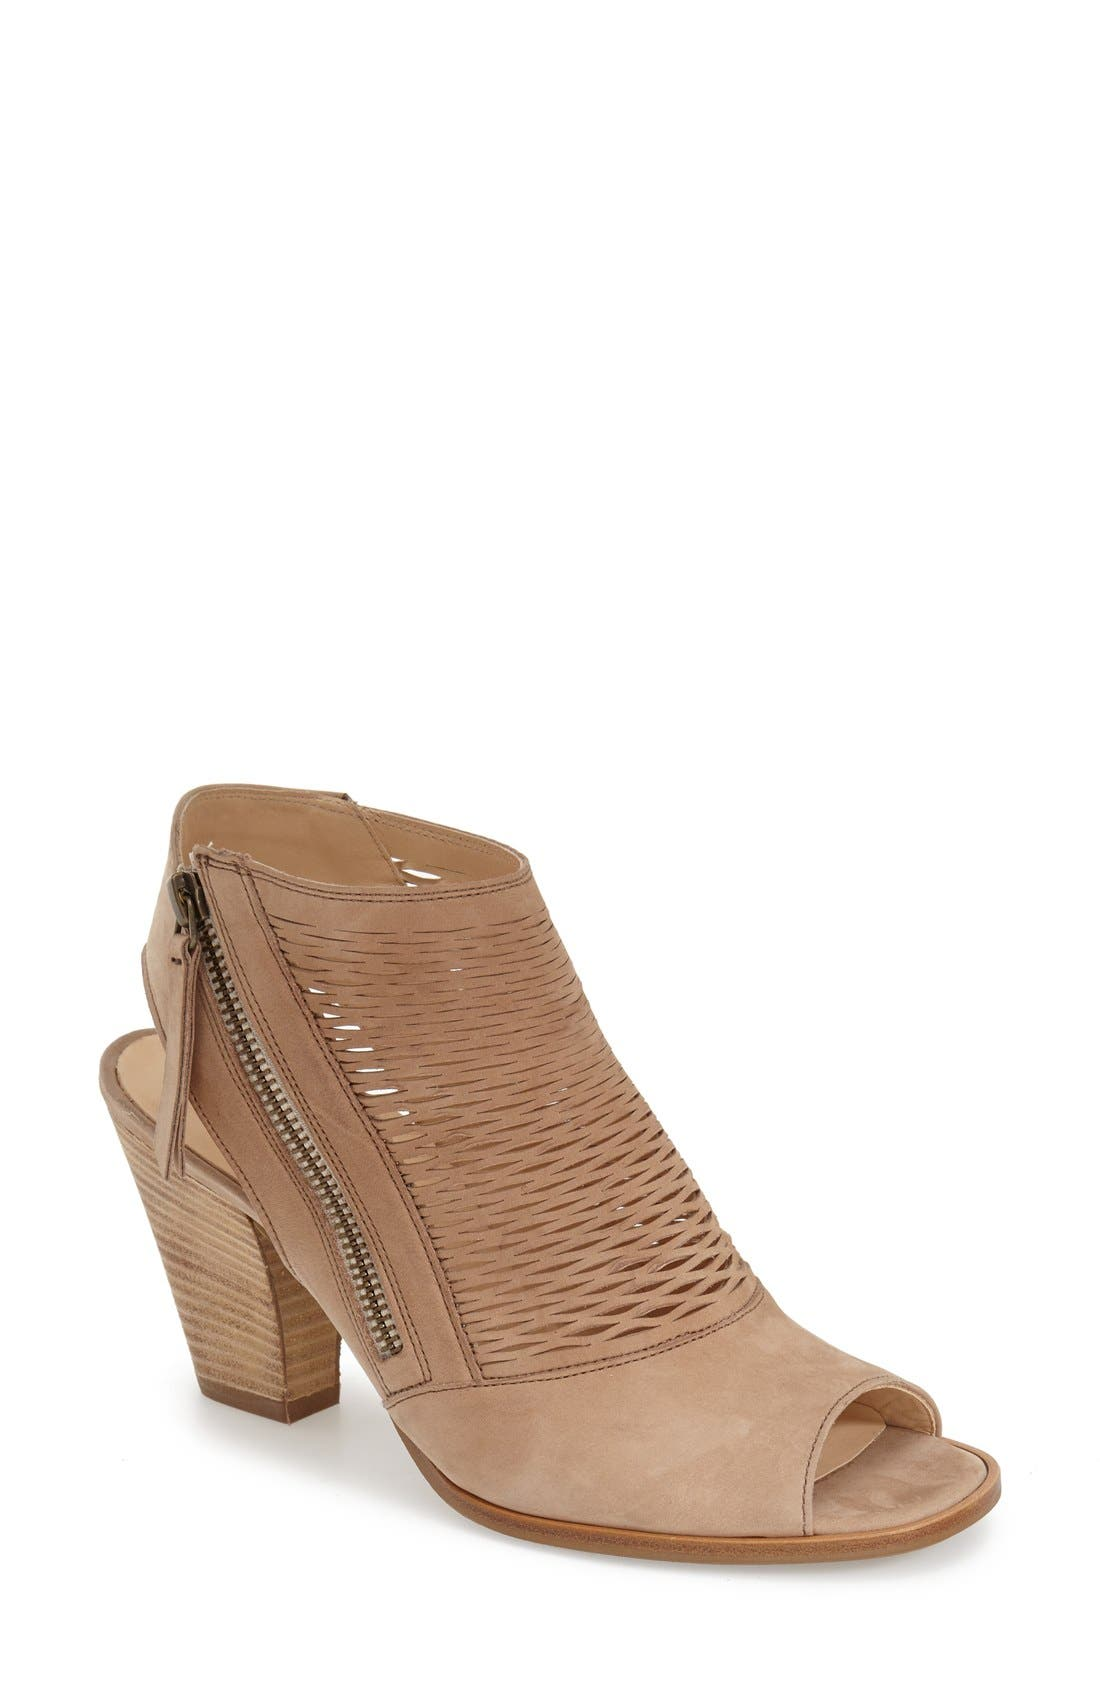 'Willow' Peep Toe Sandal,                             Main thumbnail 1, color,                             291